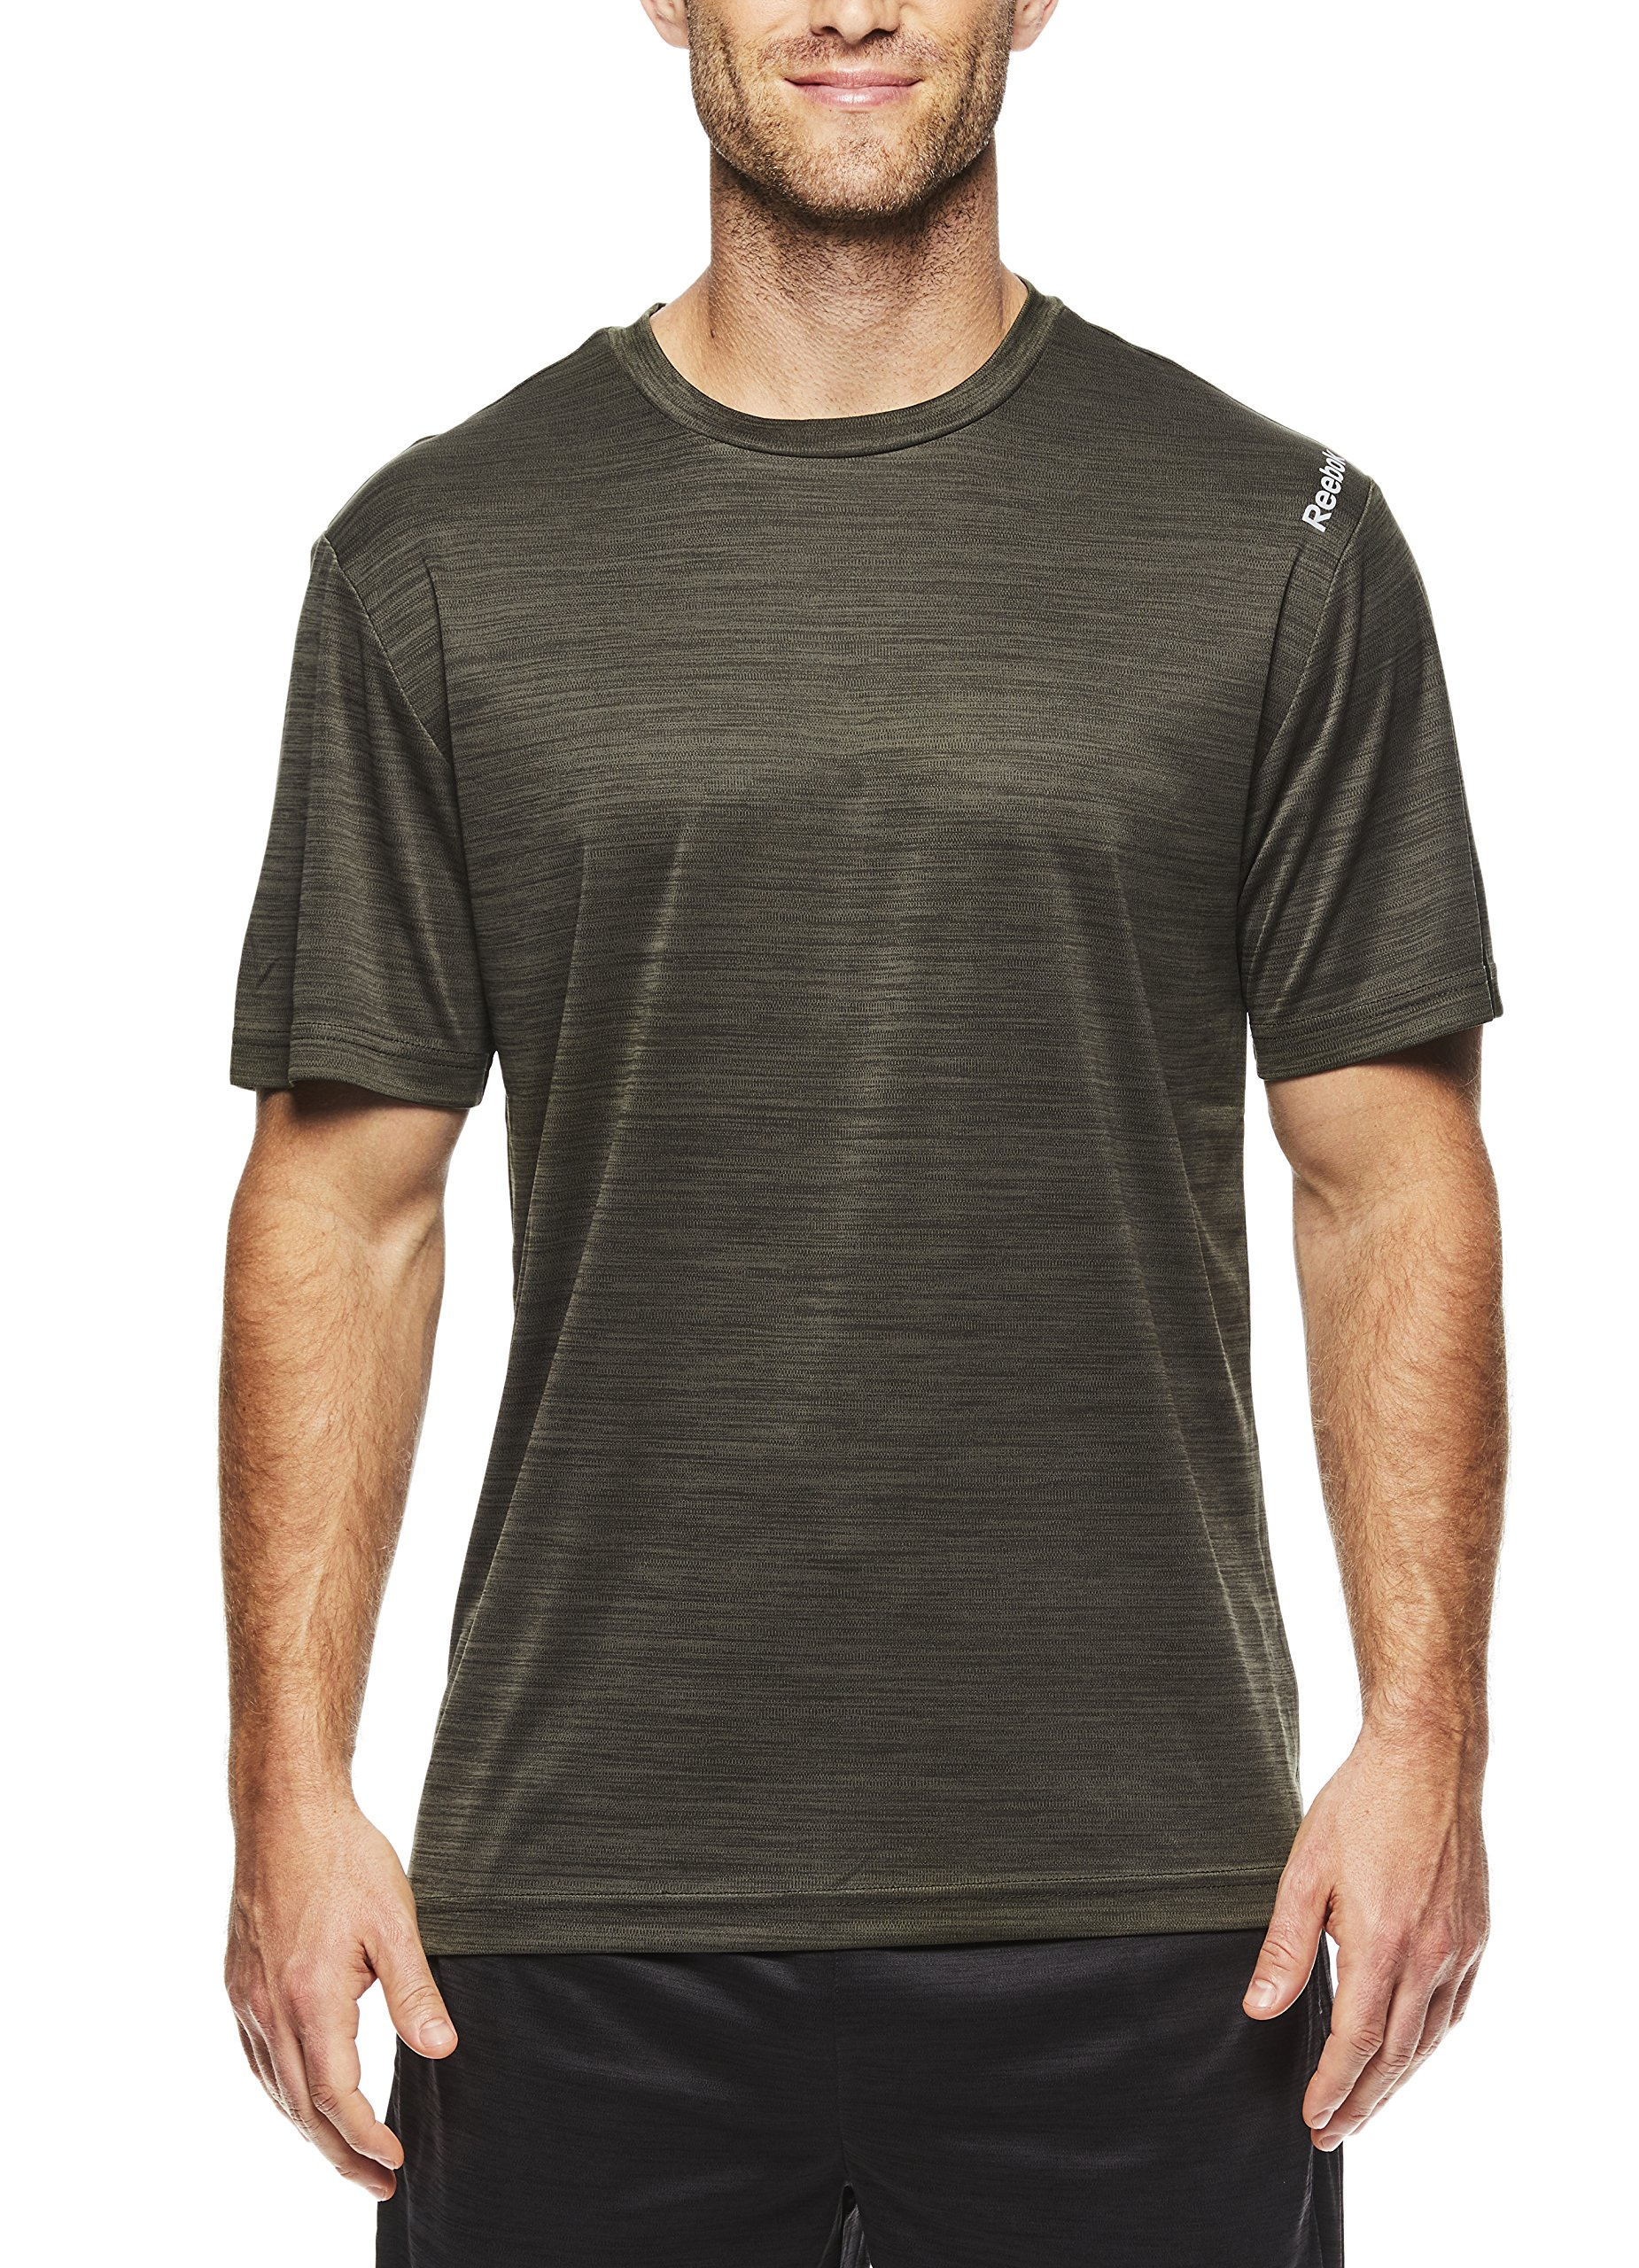 Reebok Men's Supersonic Crewneck Workout T-Shirt Designed with Performance Material - Army Green Space Dye, Small